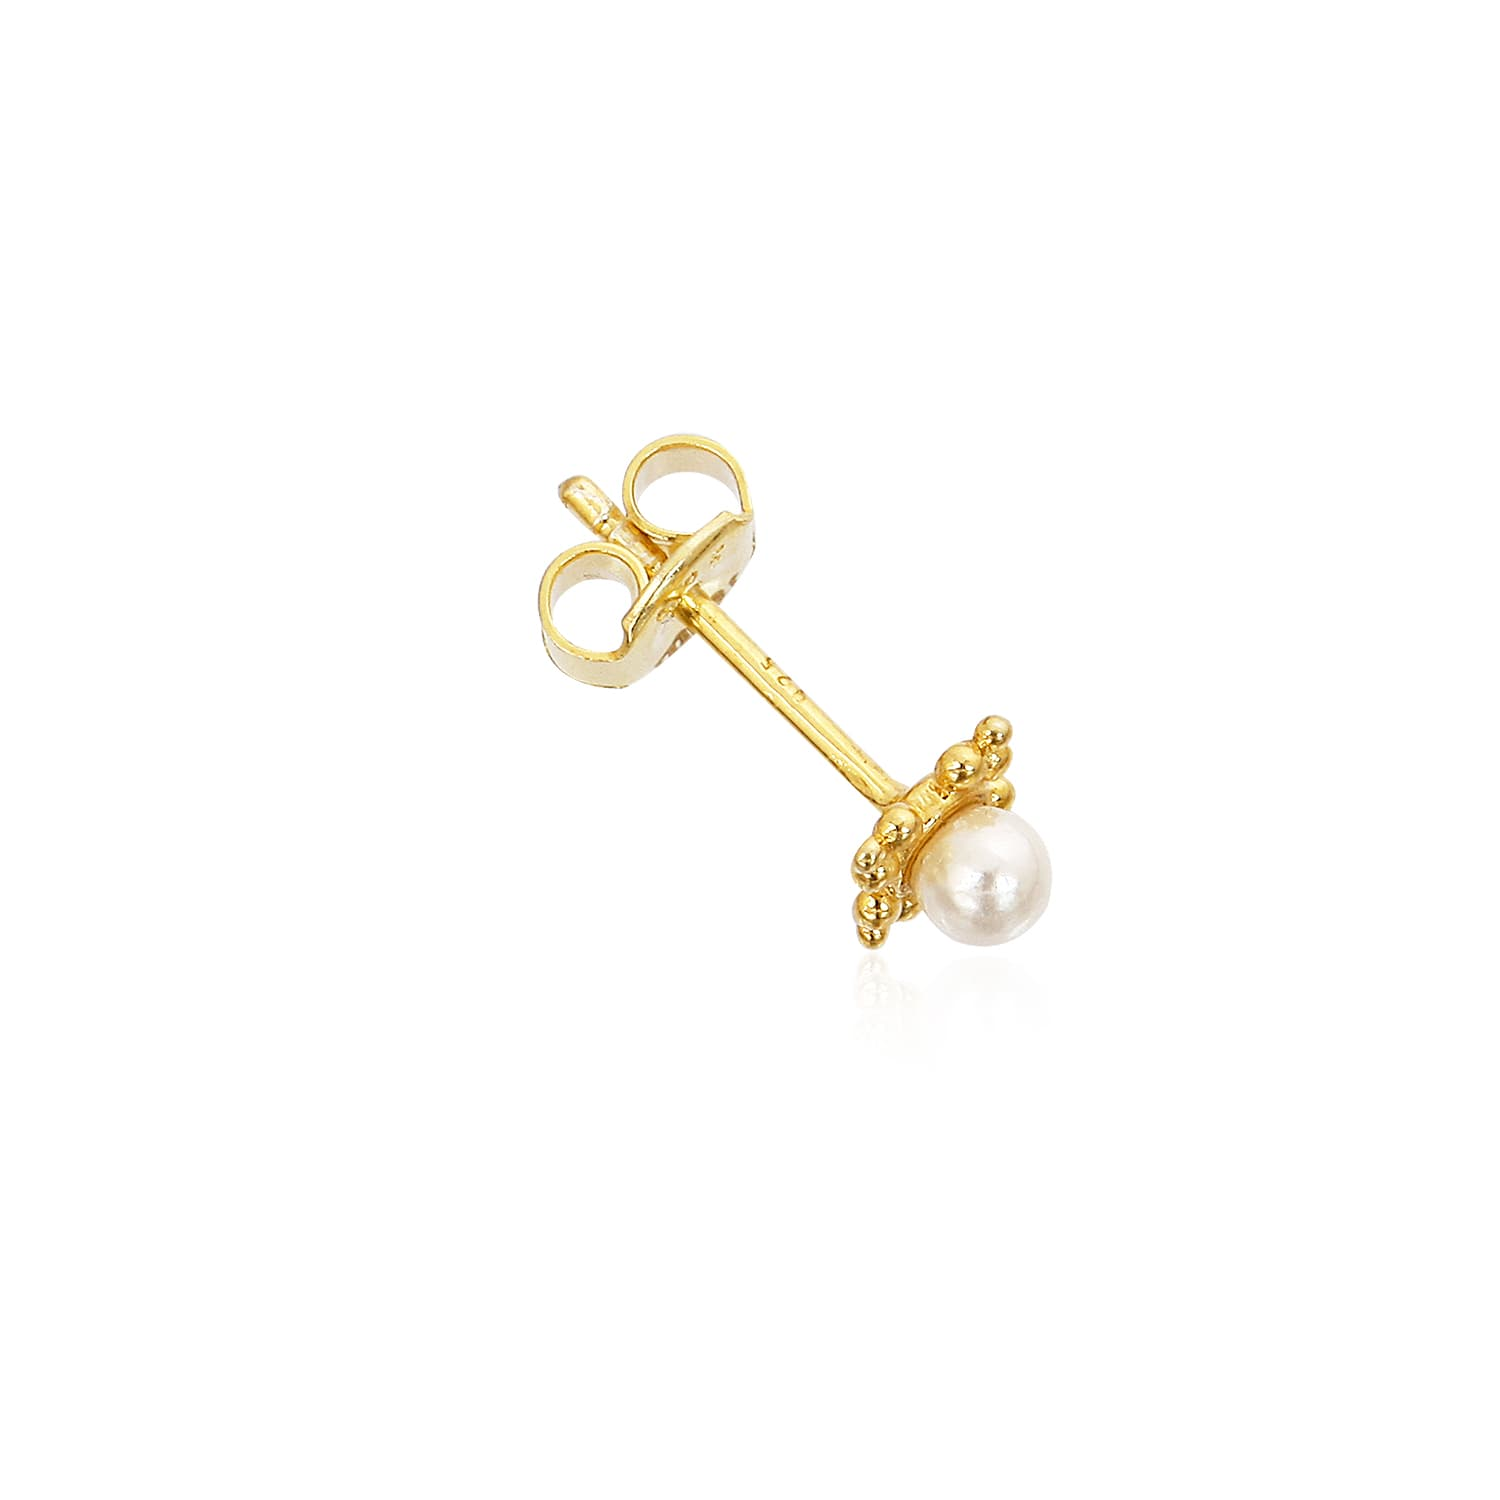 Real 24 carat gold plated pearl earring models on silver